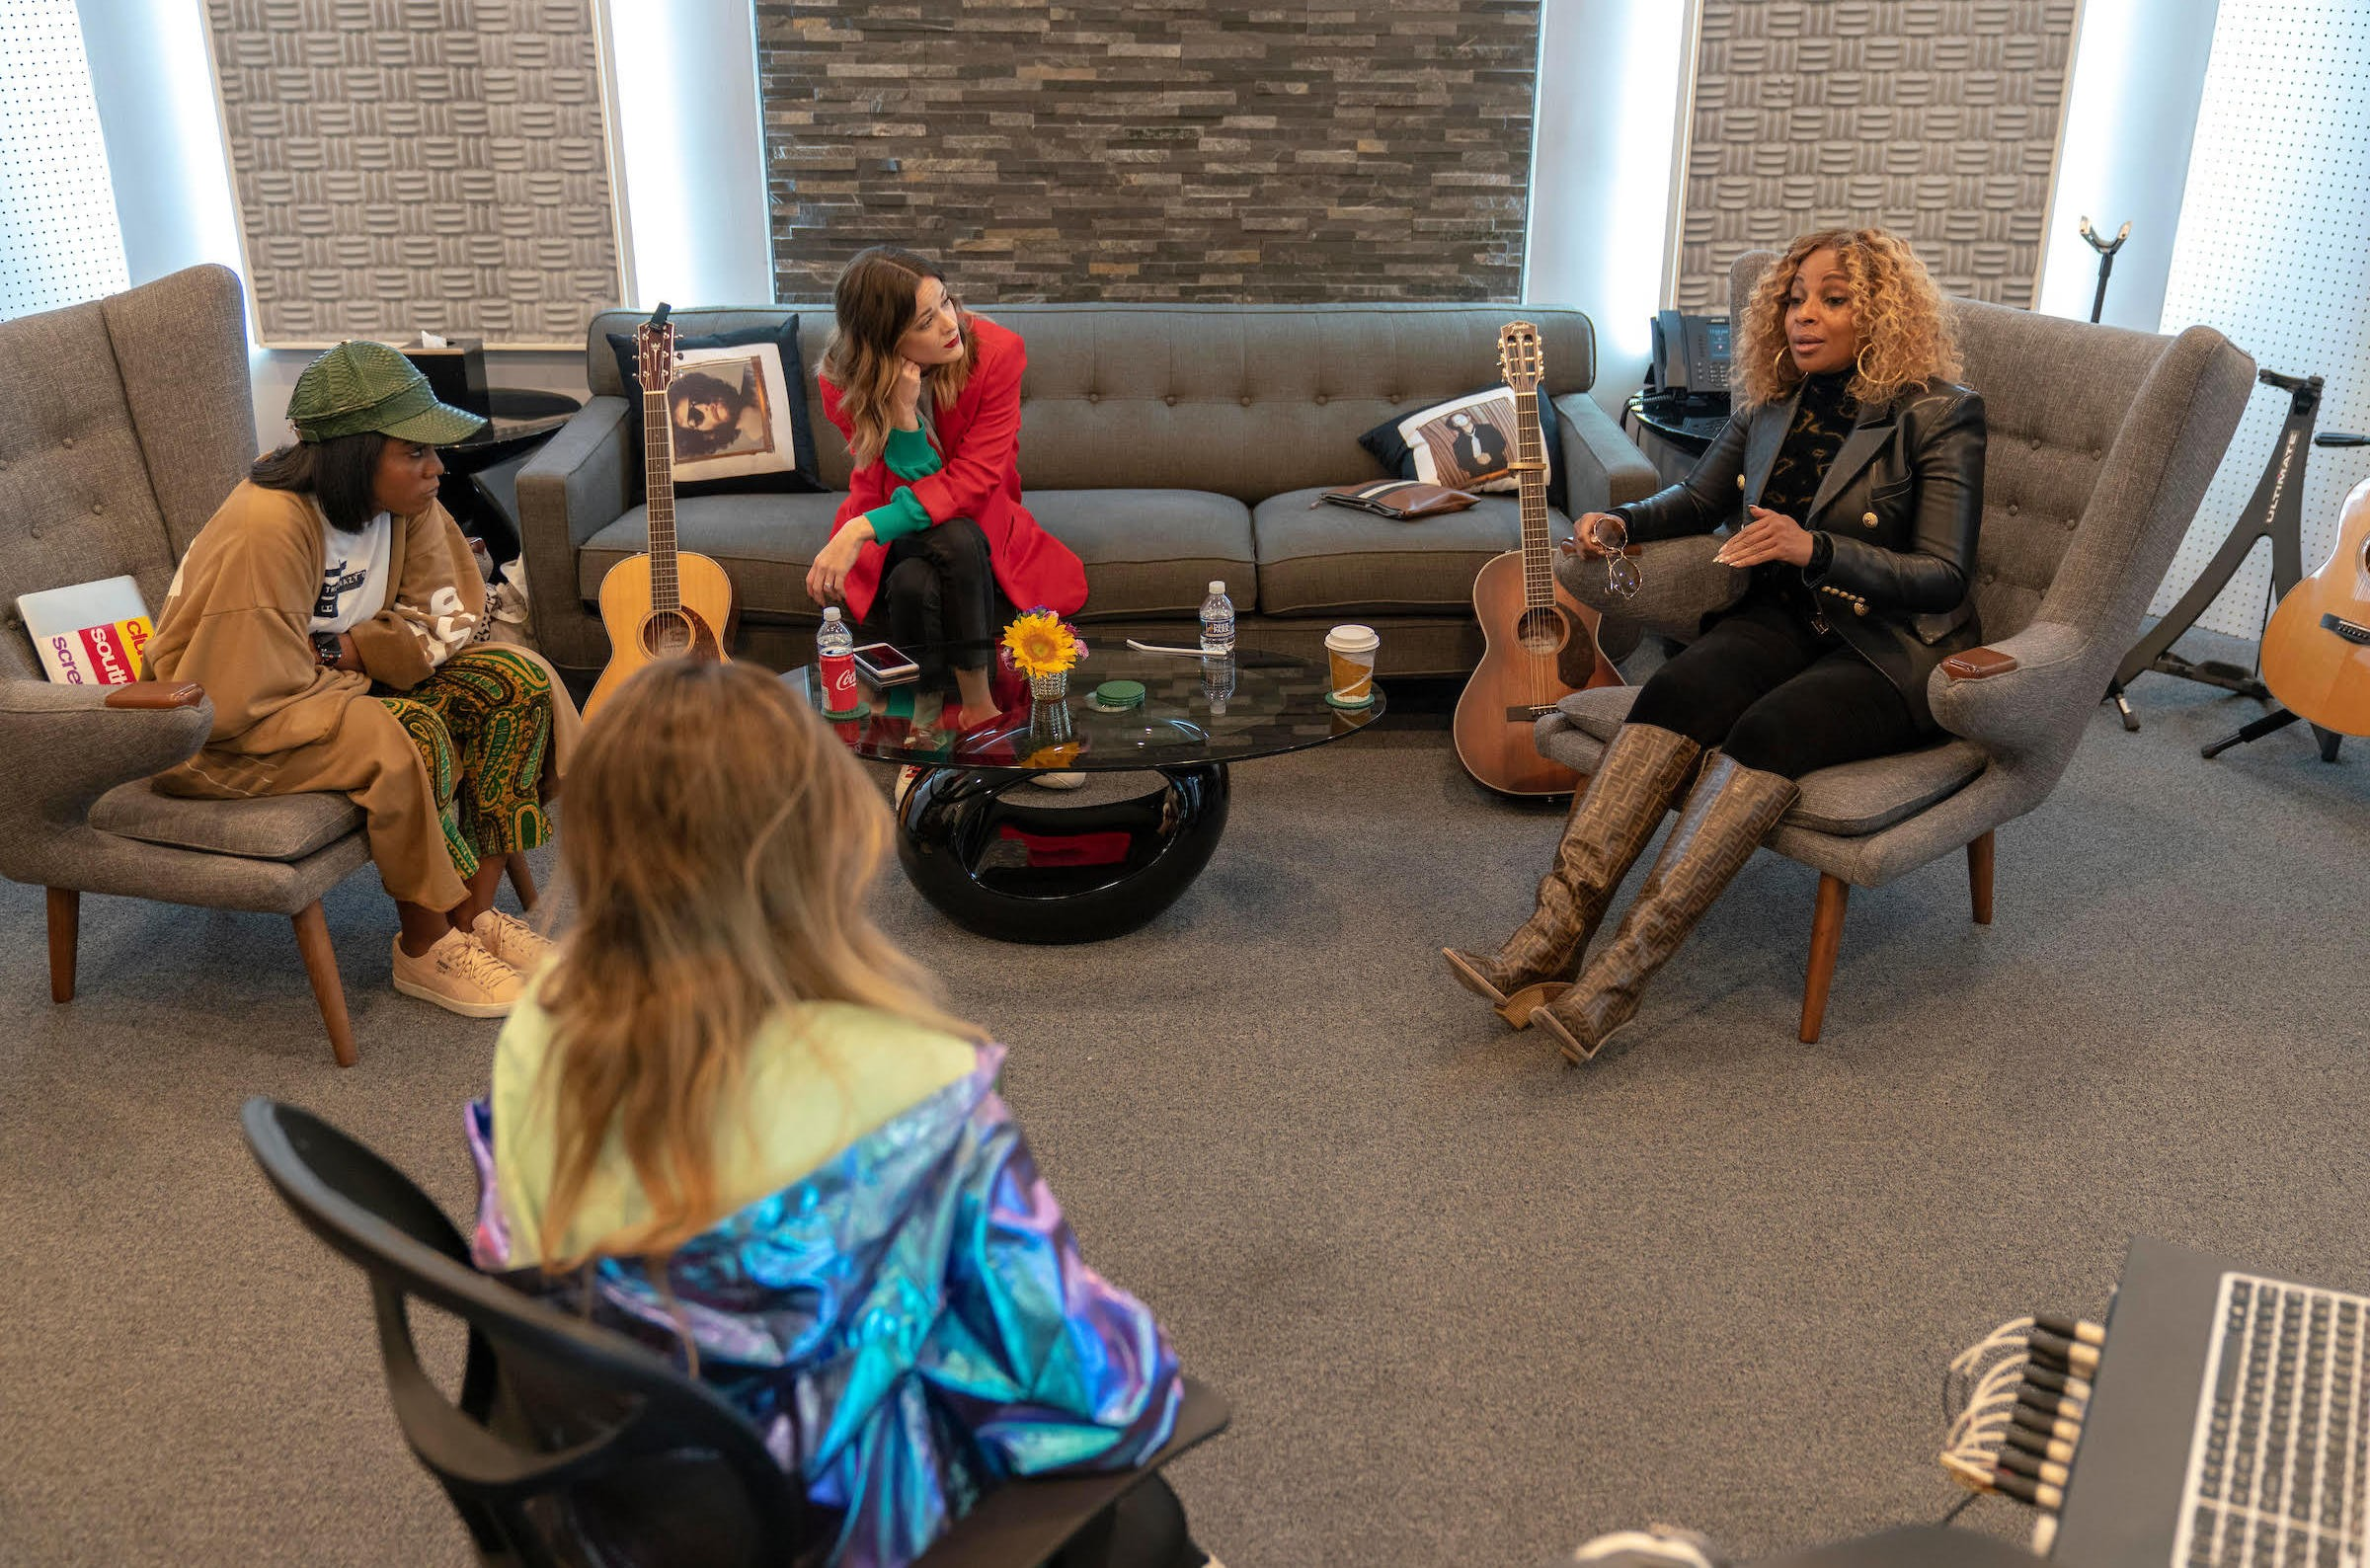 Mary J. Blige, right, collaborates with fellow songwriters, Ingrid Burley, left, and Jillian Jacqueline, center, during ASCAP's song camp in partnership with She is the Music in Nashville.